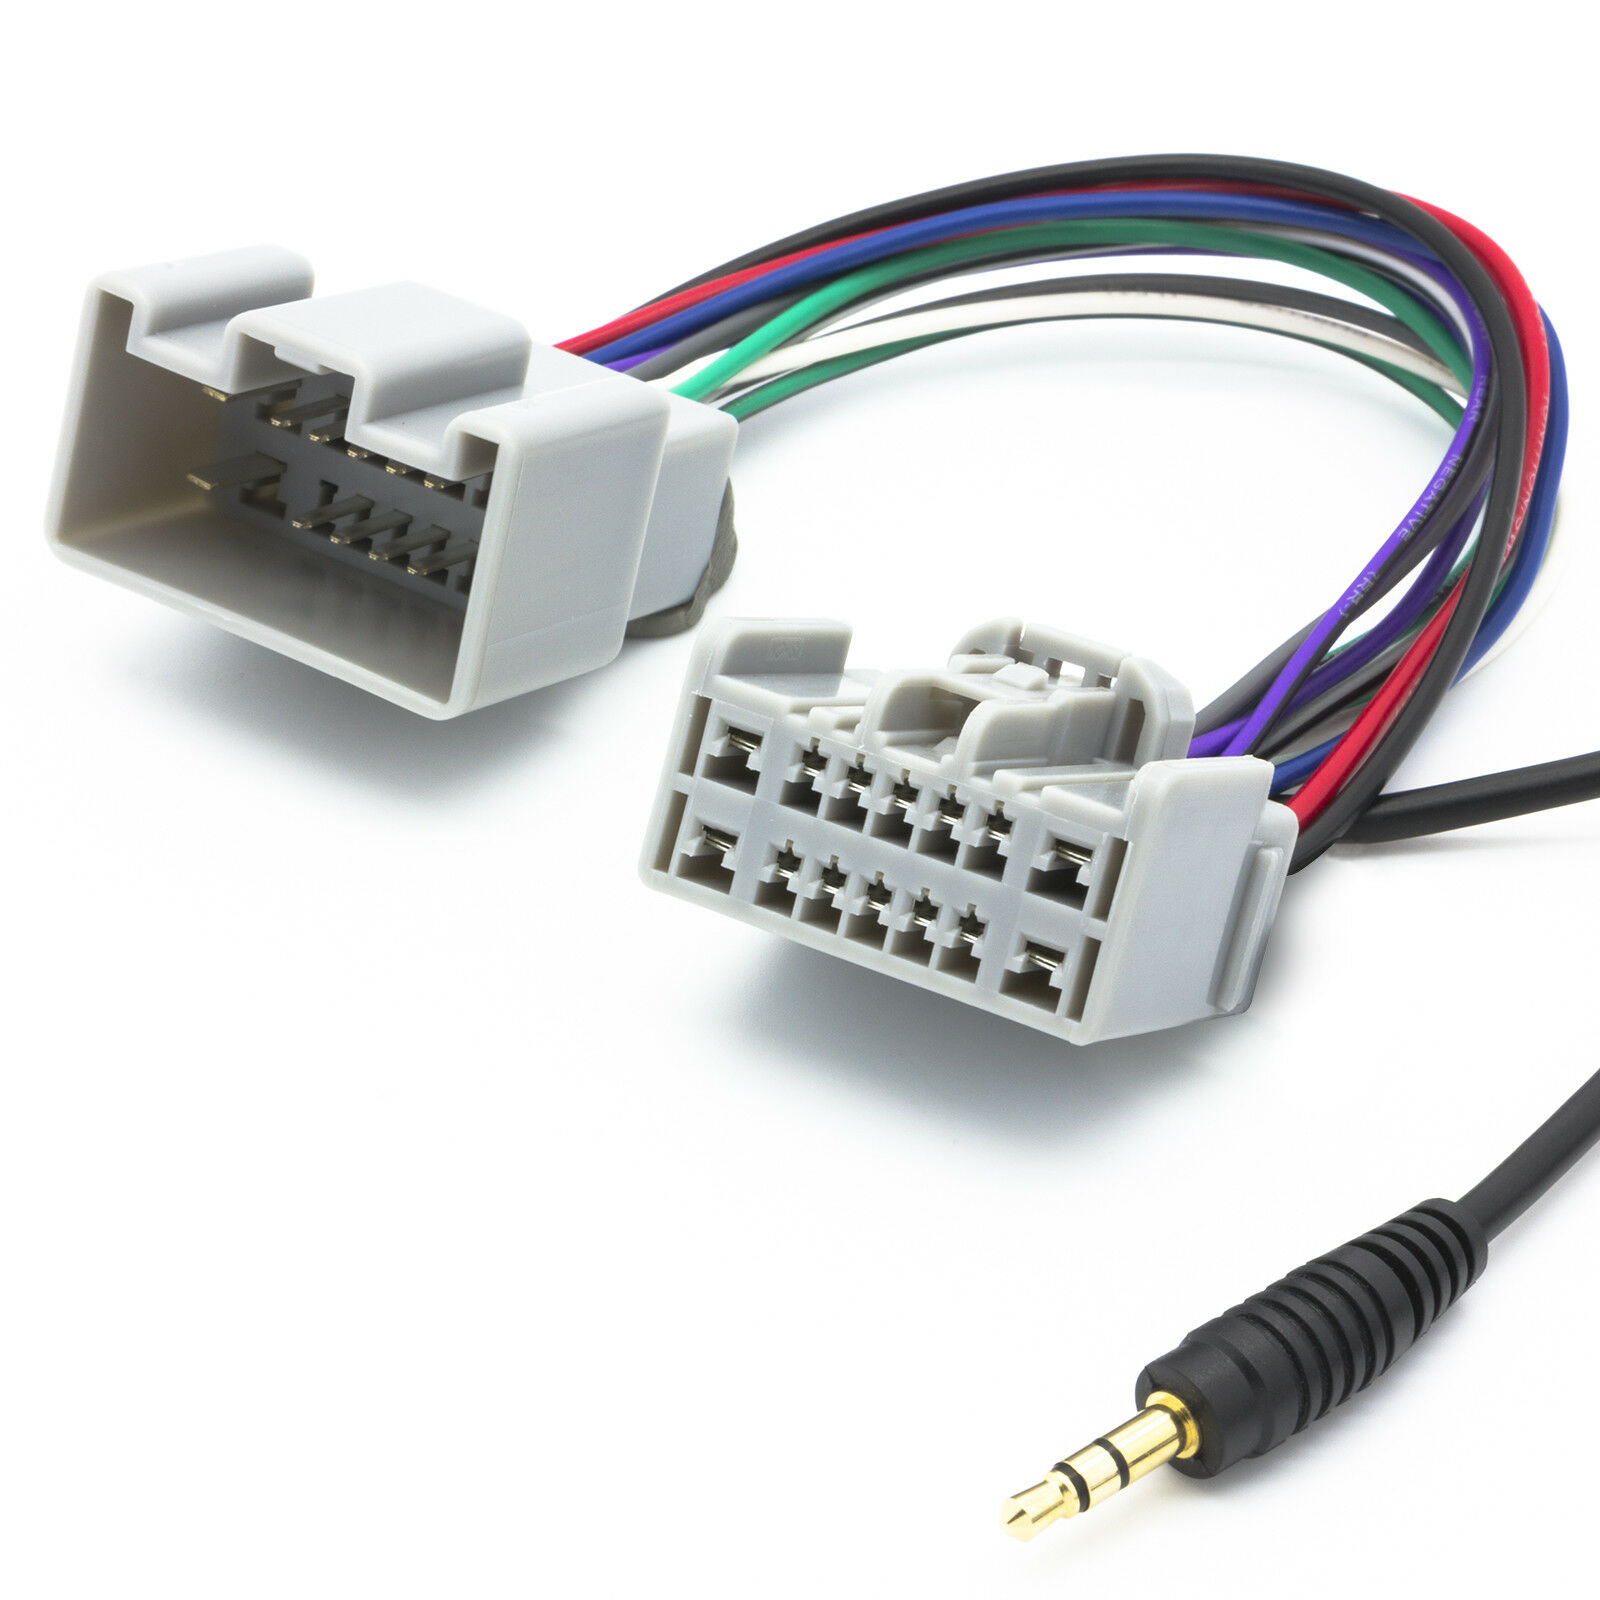 Audio Aux Line In Adapter Kabel Radio 35mm Klinken Stecker Fr Wiring Harness Sony Mex 5di 1 Sur 2 Voir Plus